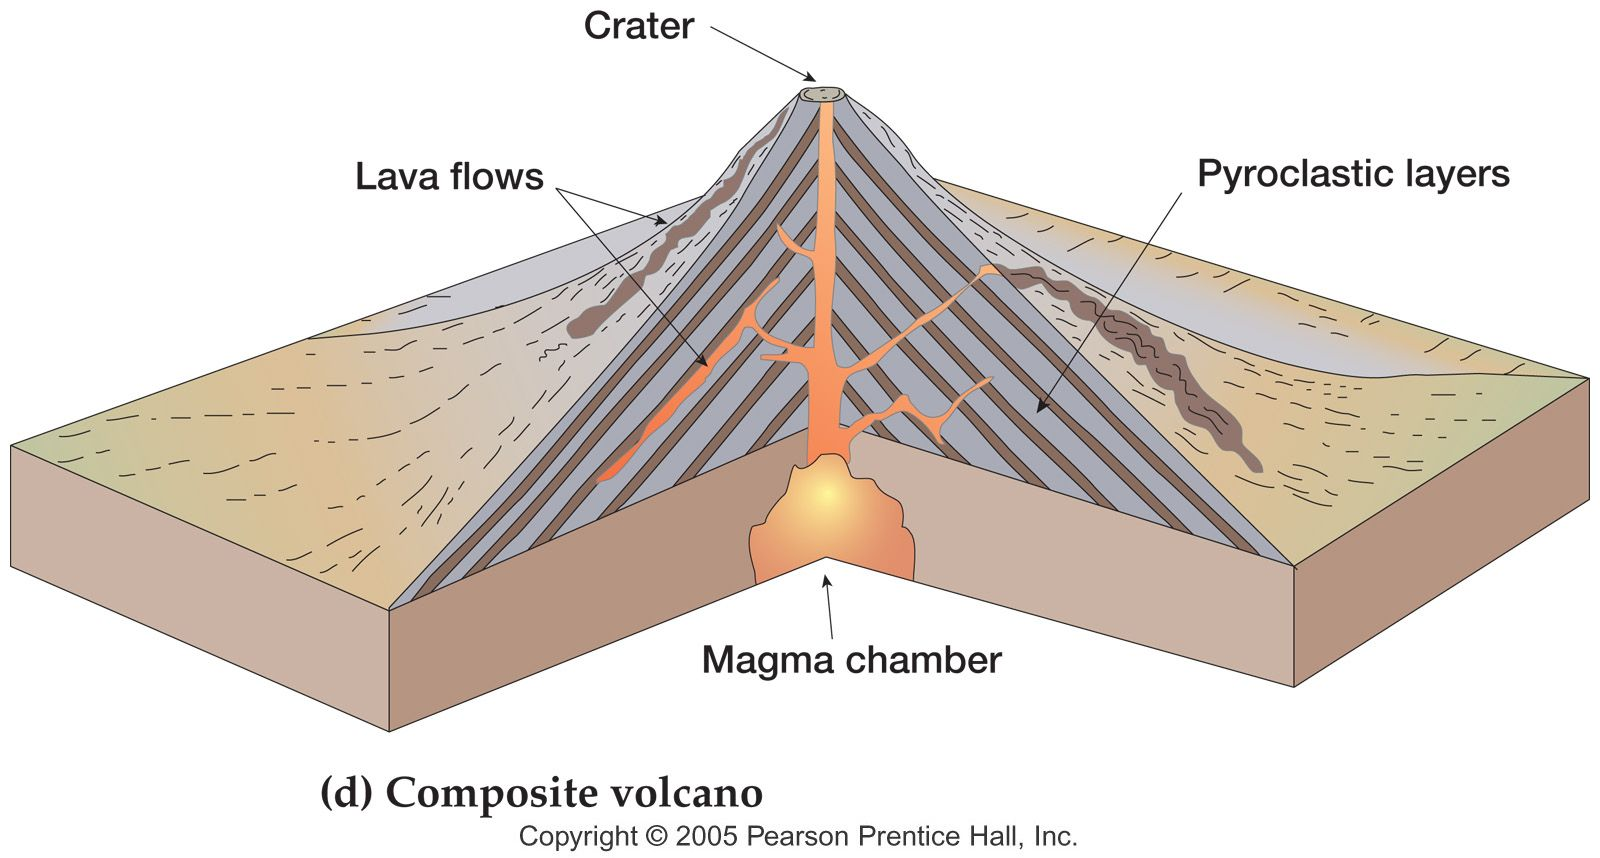 Shield volcano diagram quotes data set composite volcano diagram yahoo image search results volcano rh pinterest com fissure volcano diagram lava dome volcano diagram ccuart Image collections